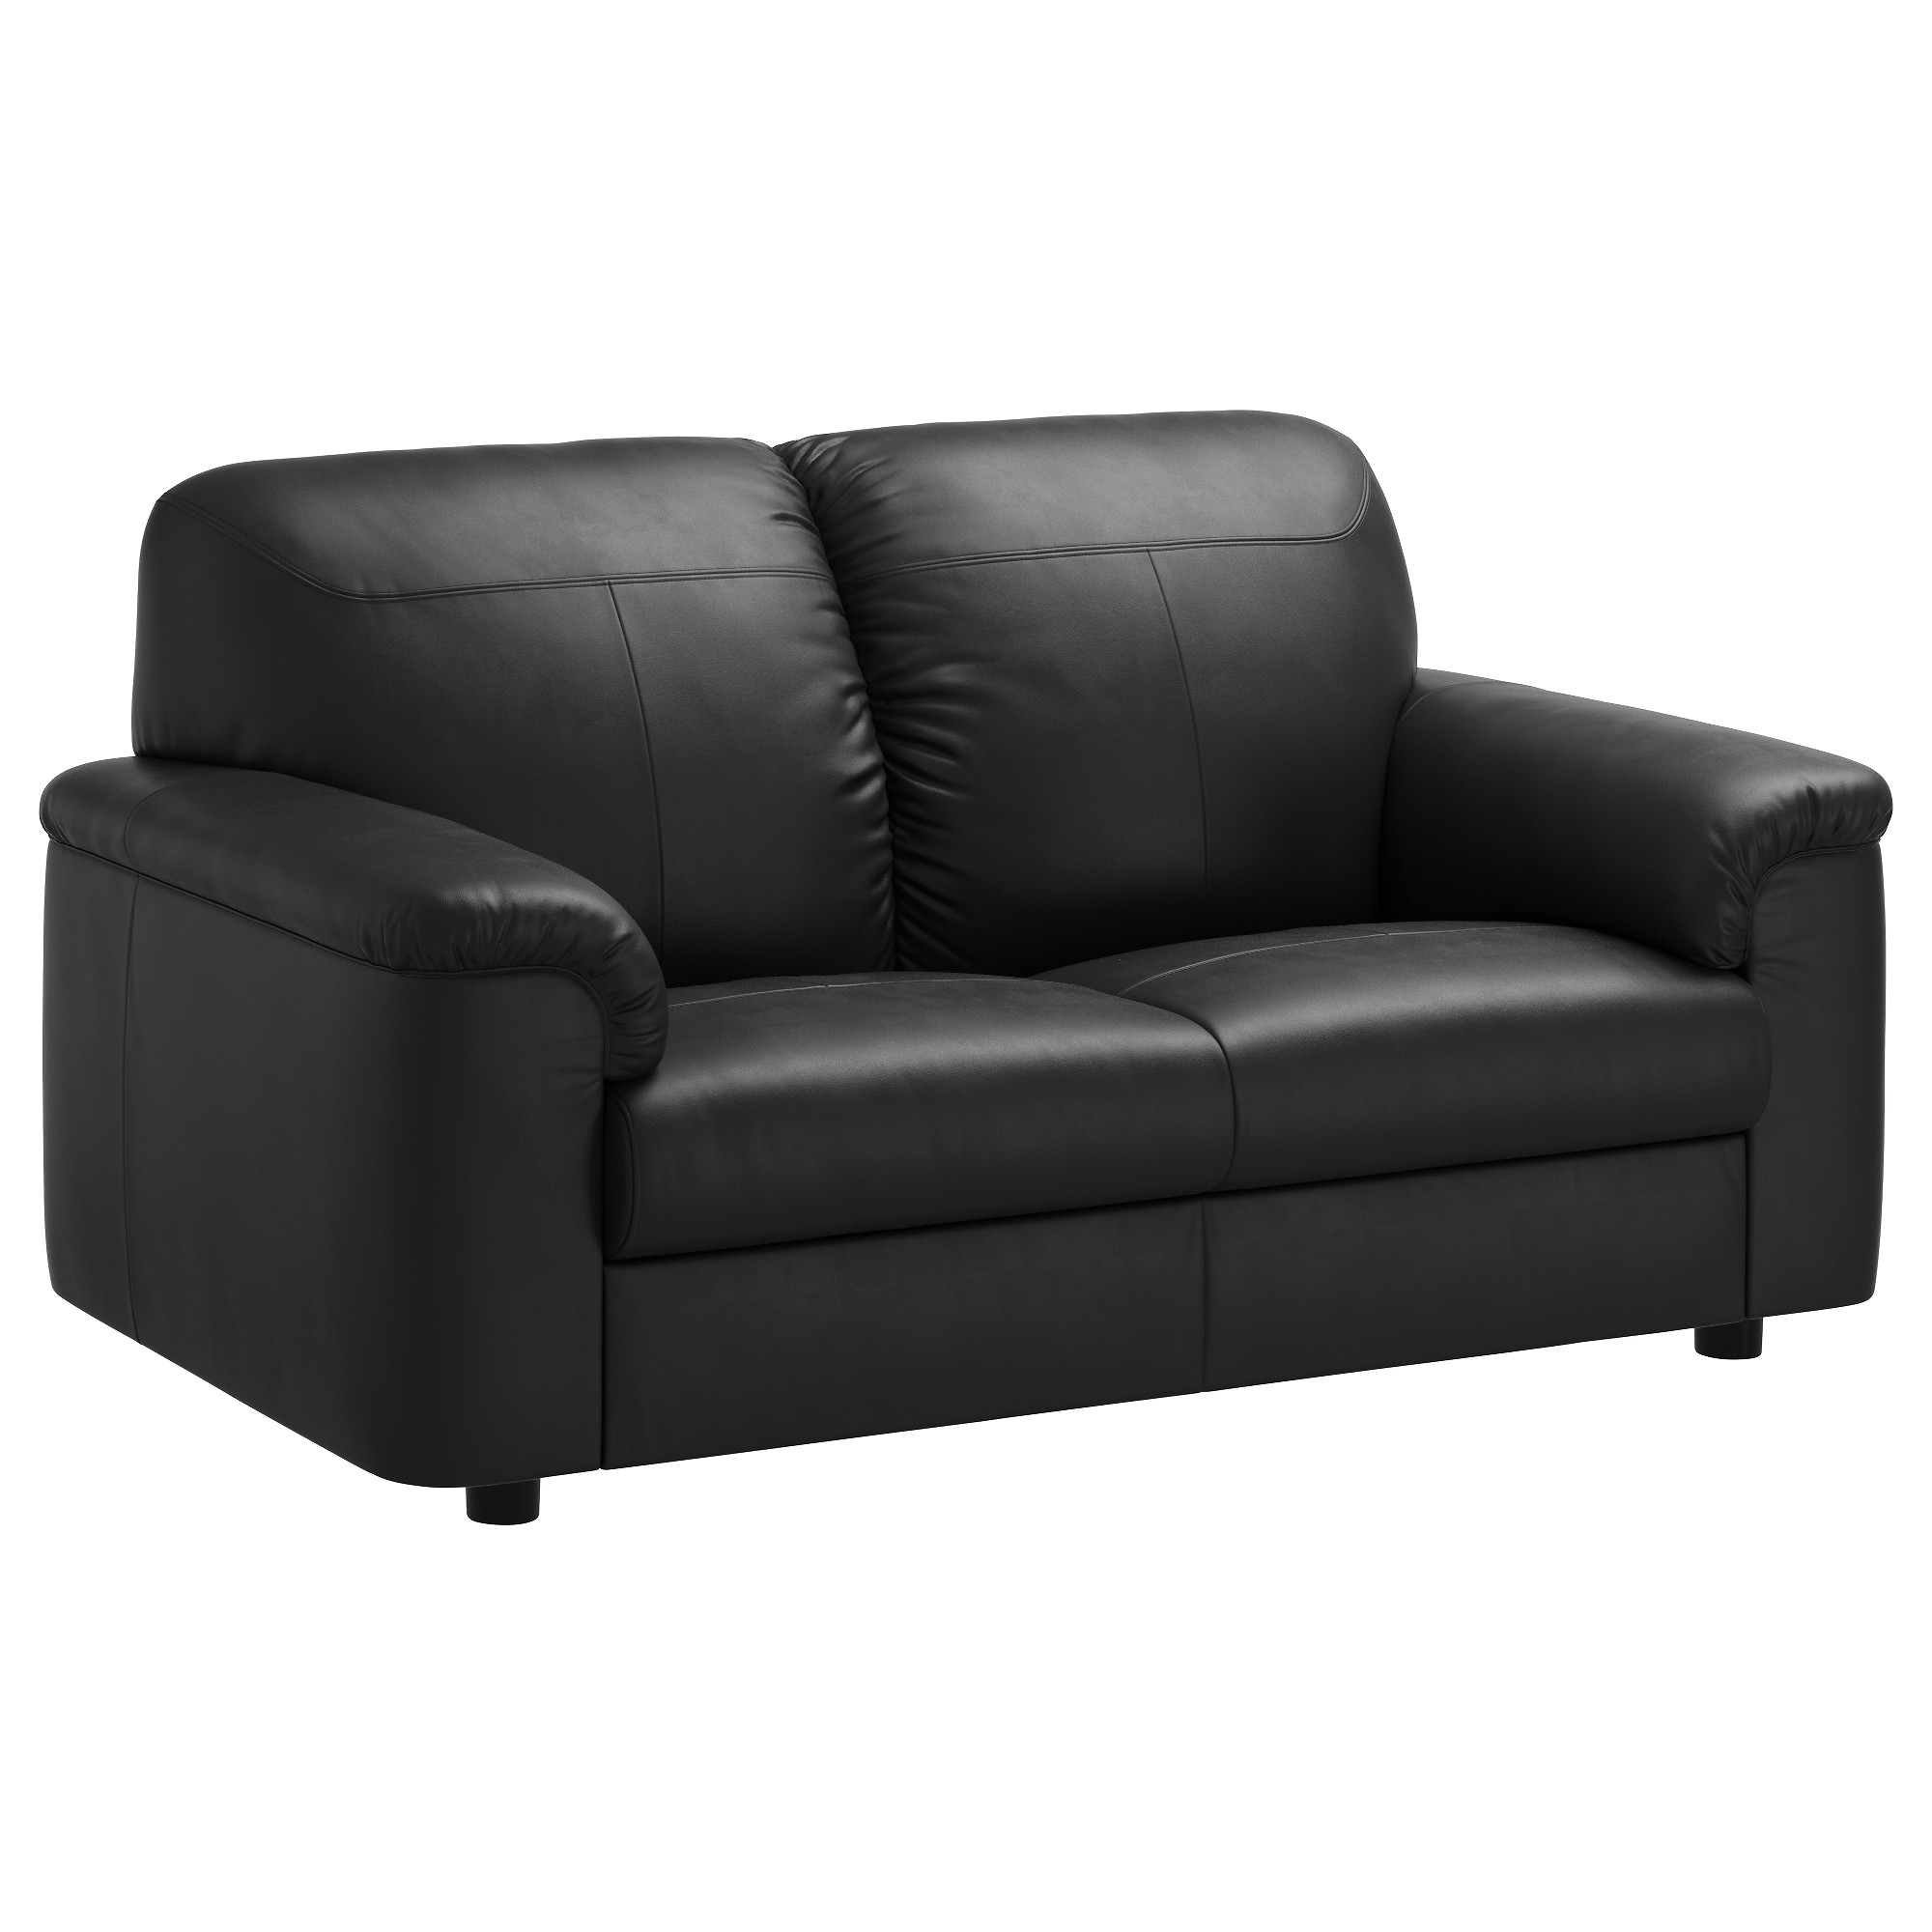 Well Known Timsfors Two Seat Sofa Mjuk/kimstad Black – Ikea Inside Ikea Two Seater Sofas (View 19 of 20)